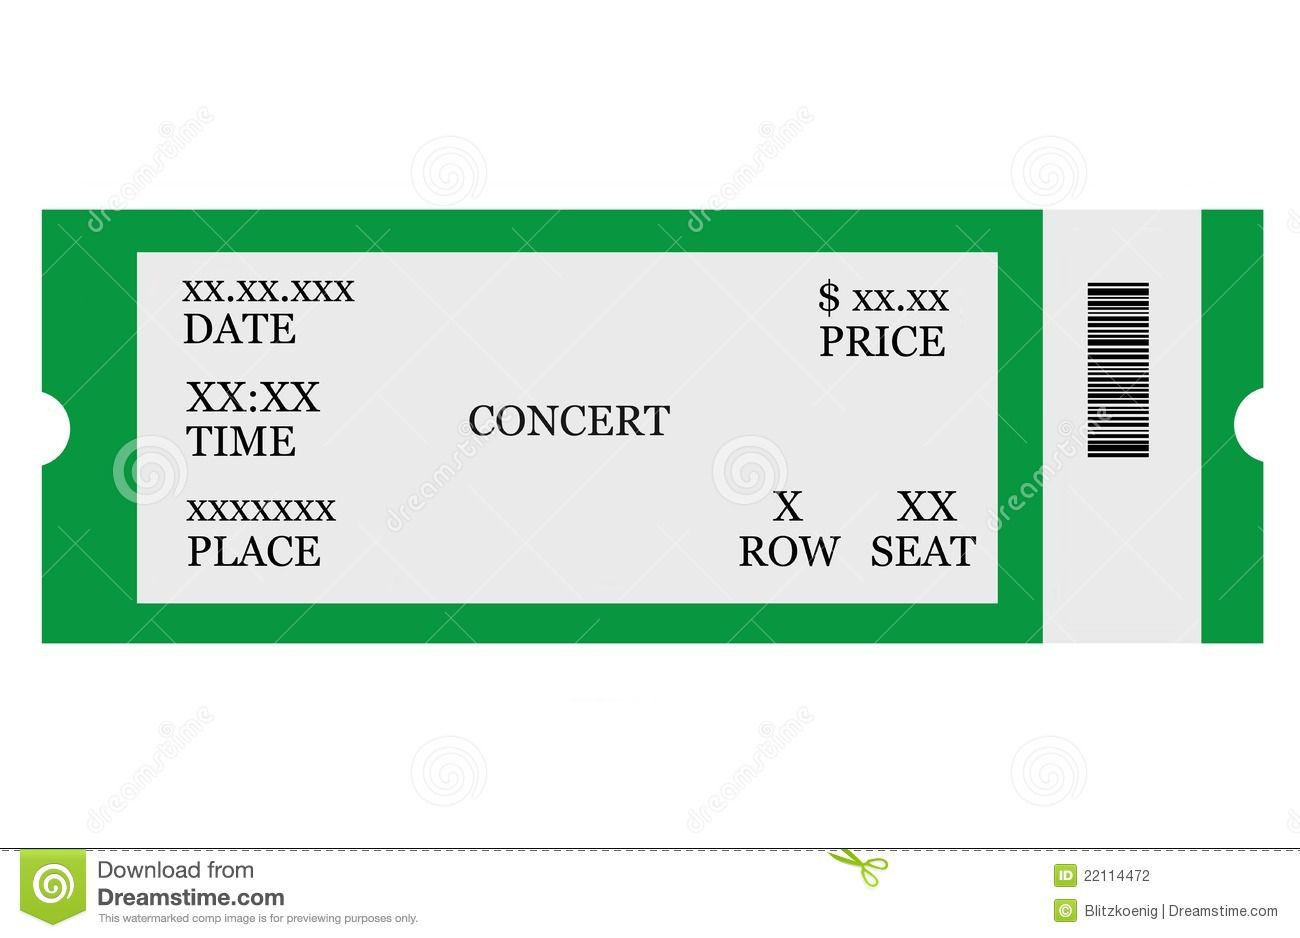 008 Fearsome Concert Ticket Template Free Printable Design  GiftFull